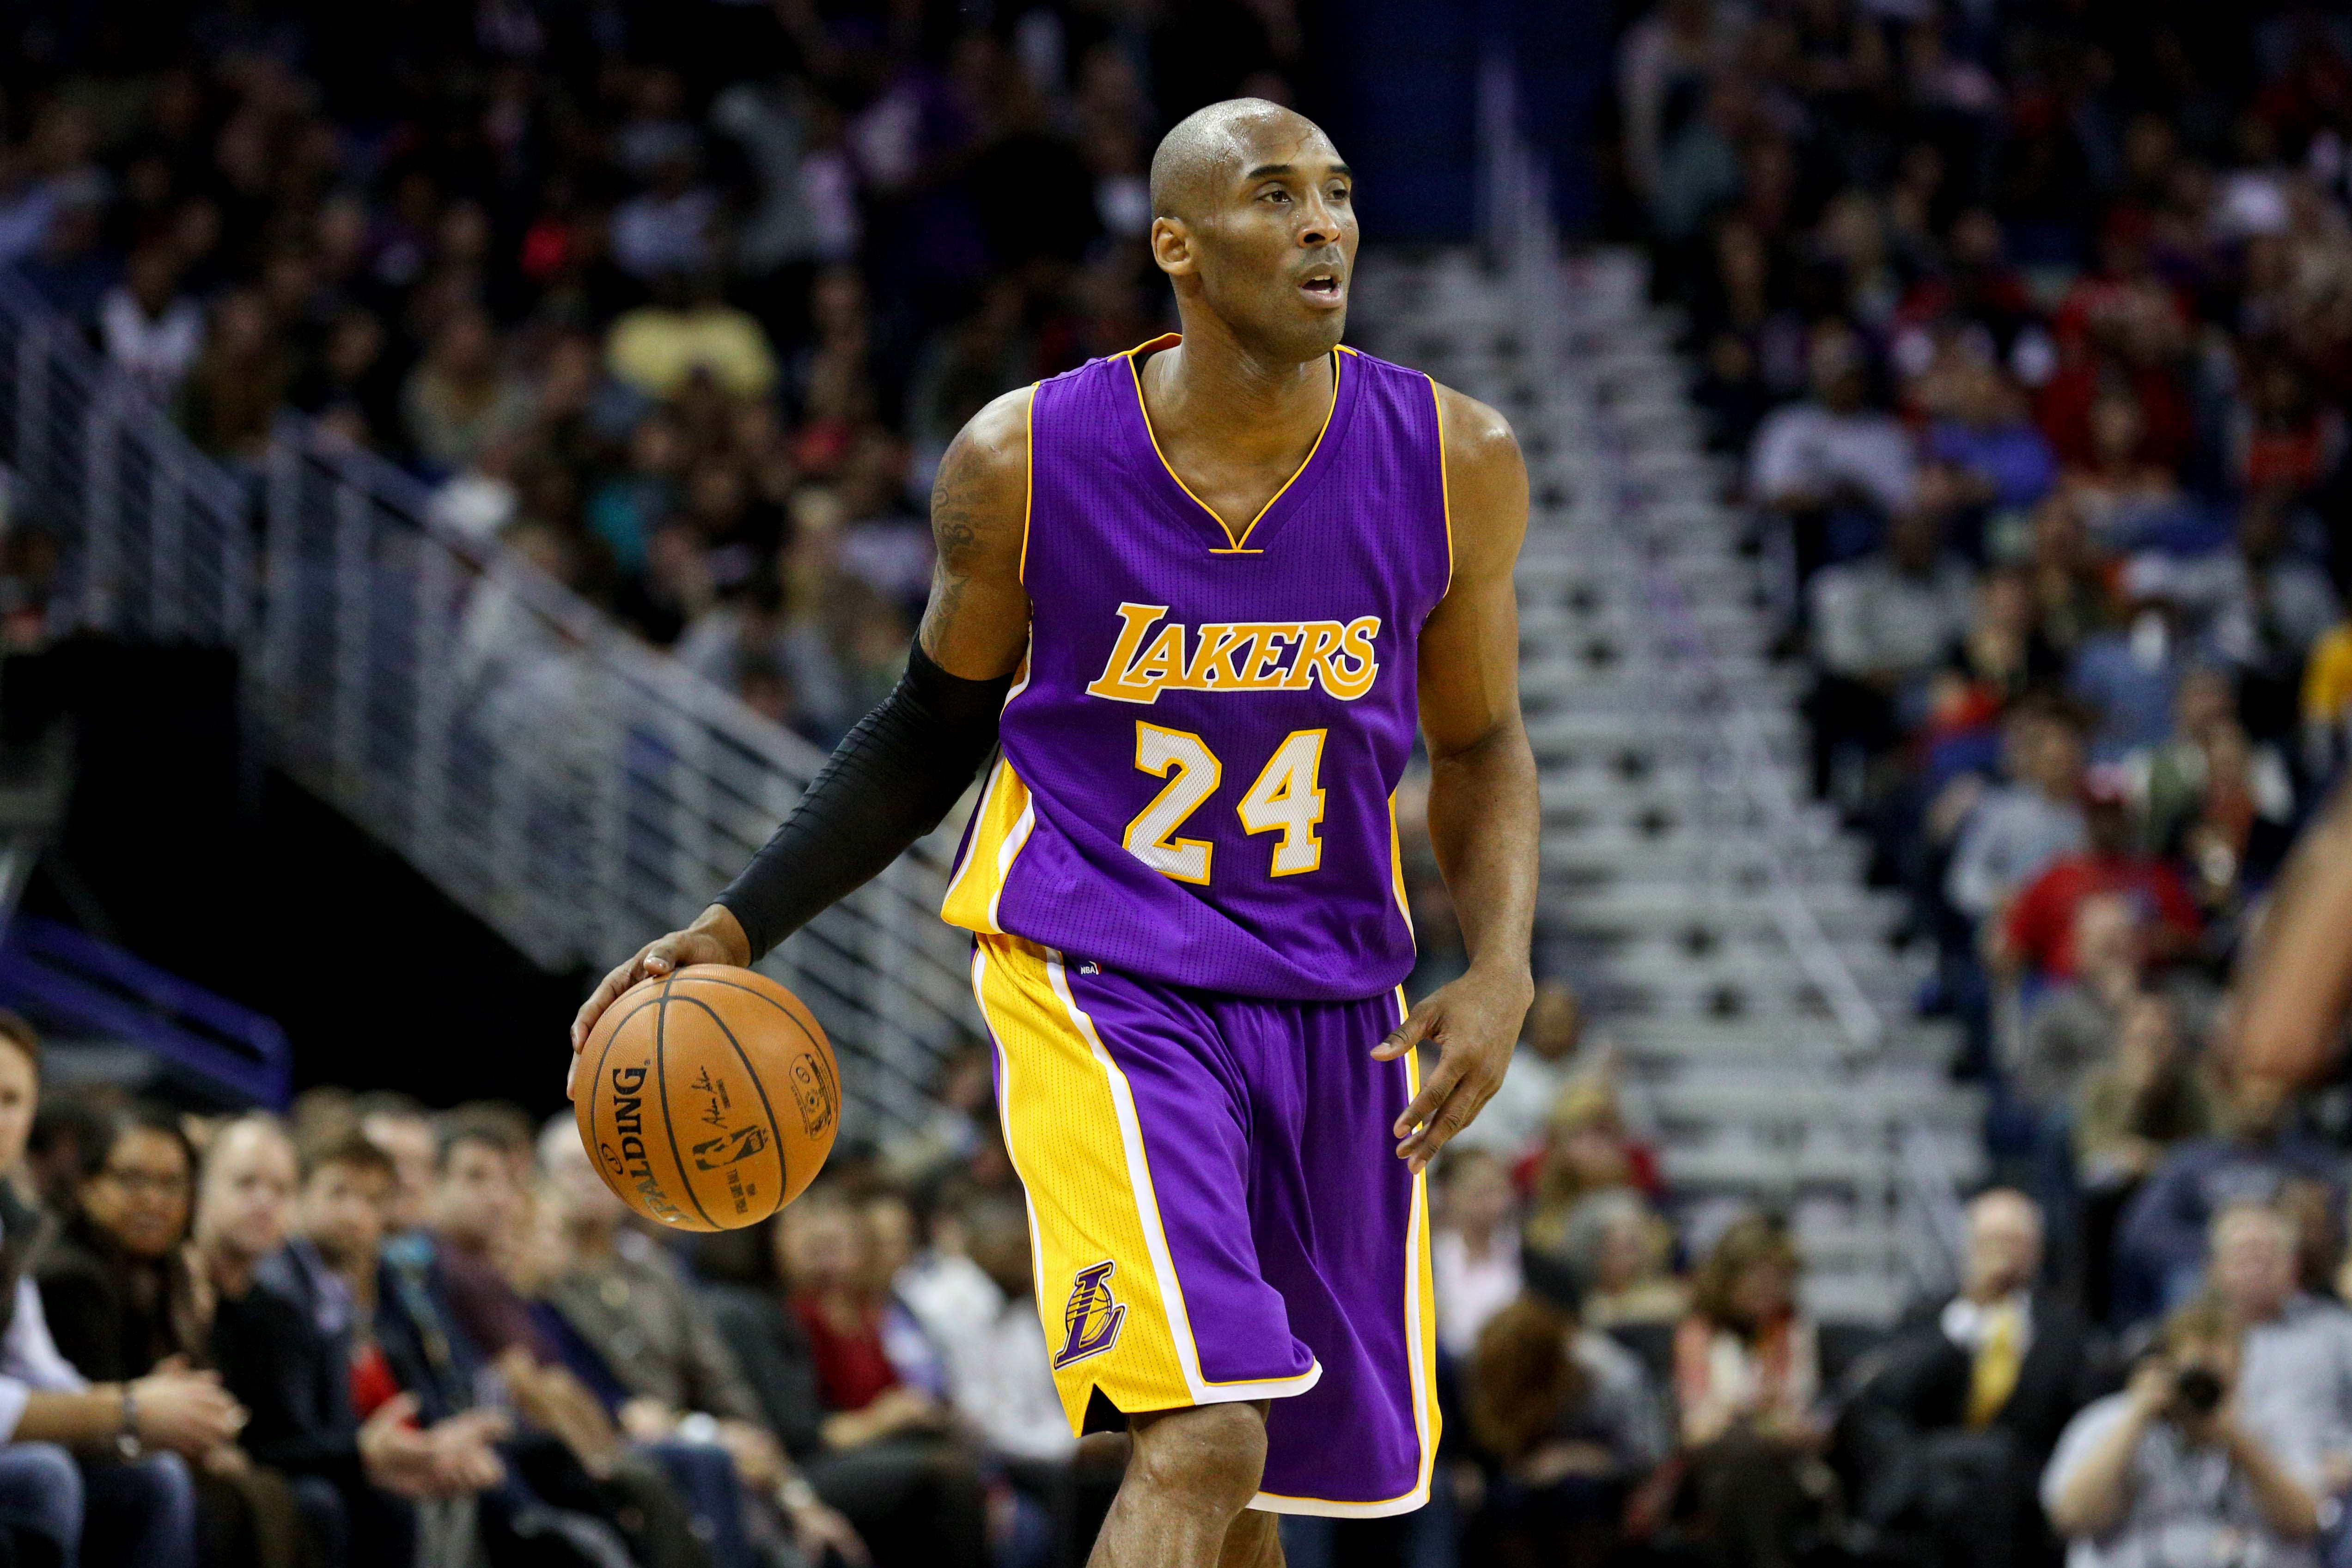 Kobe bryant wallpaper 2016 wallpapersafari - Kobe bryant wallpaper free download ...